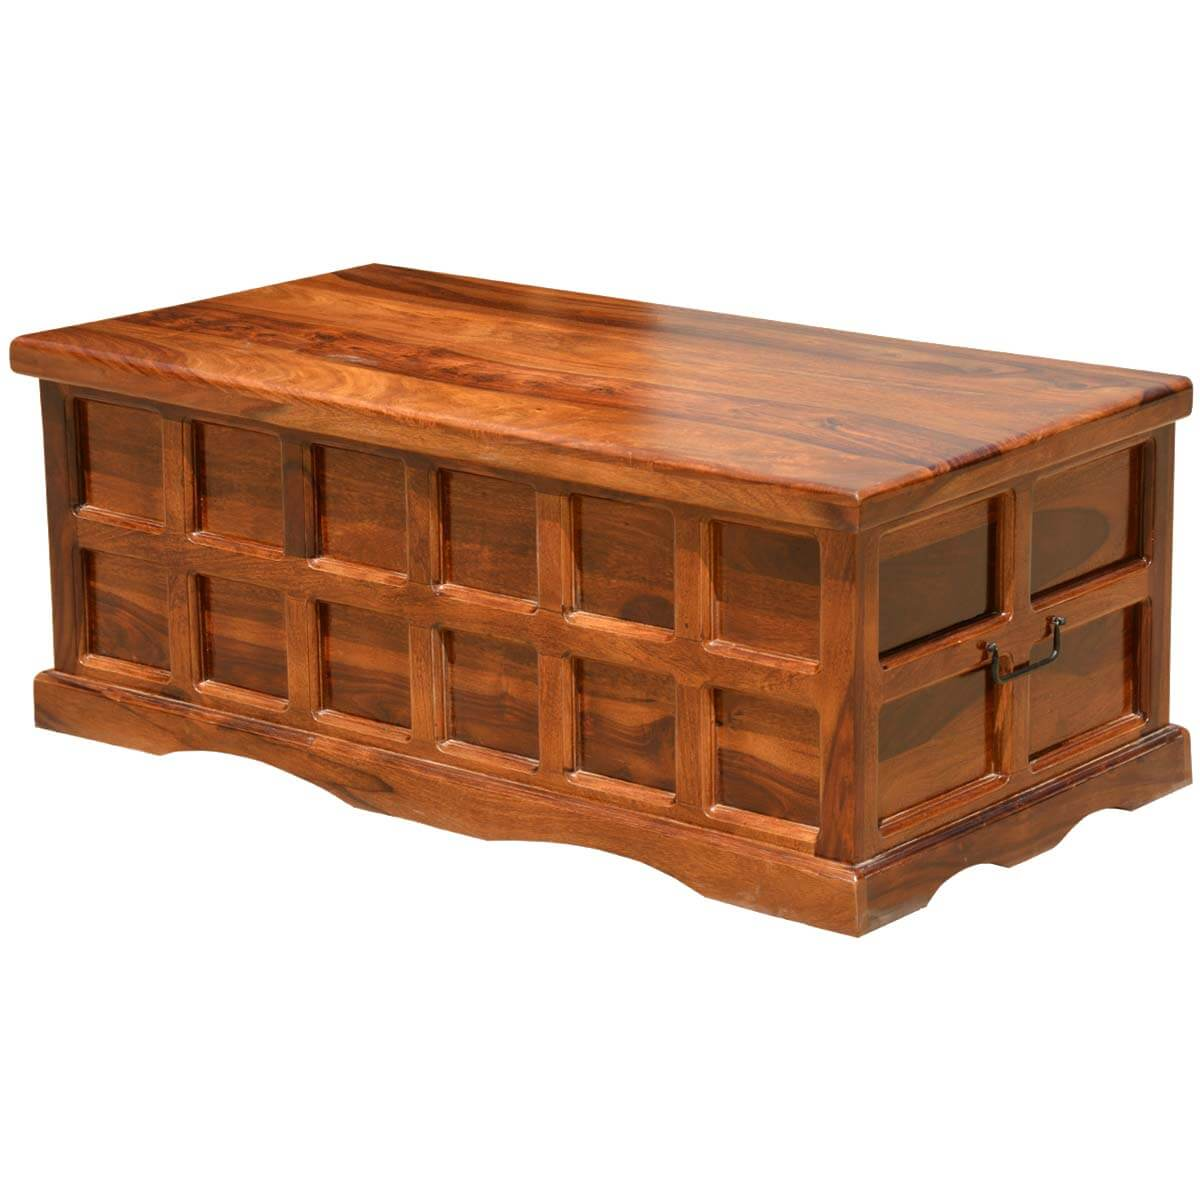 Solid wood handmade traditional coffee table storage box chest Coffee table chest with storage